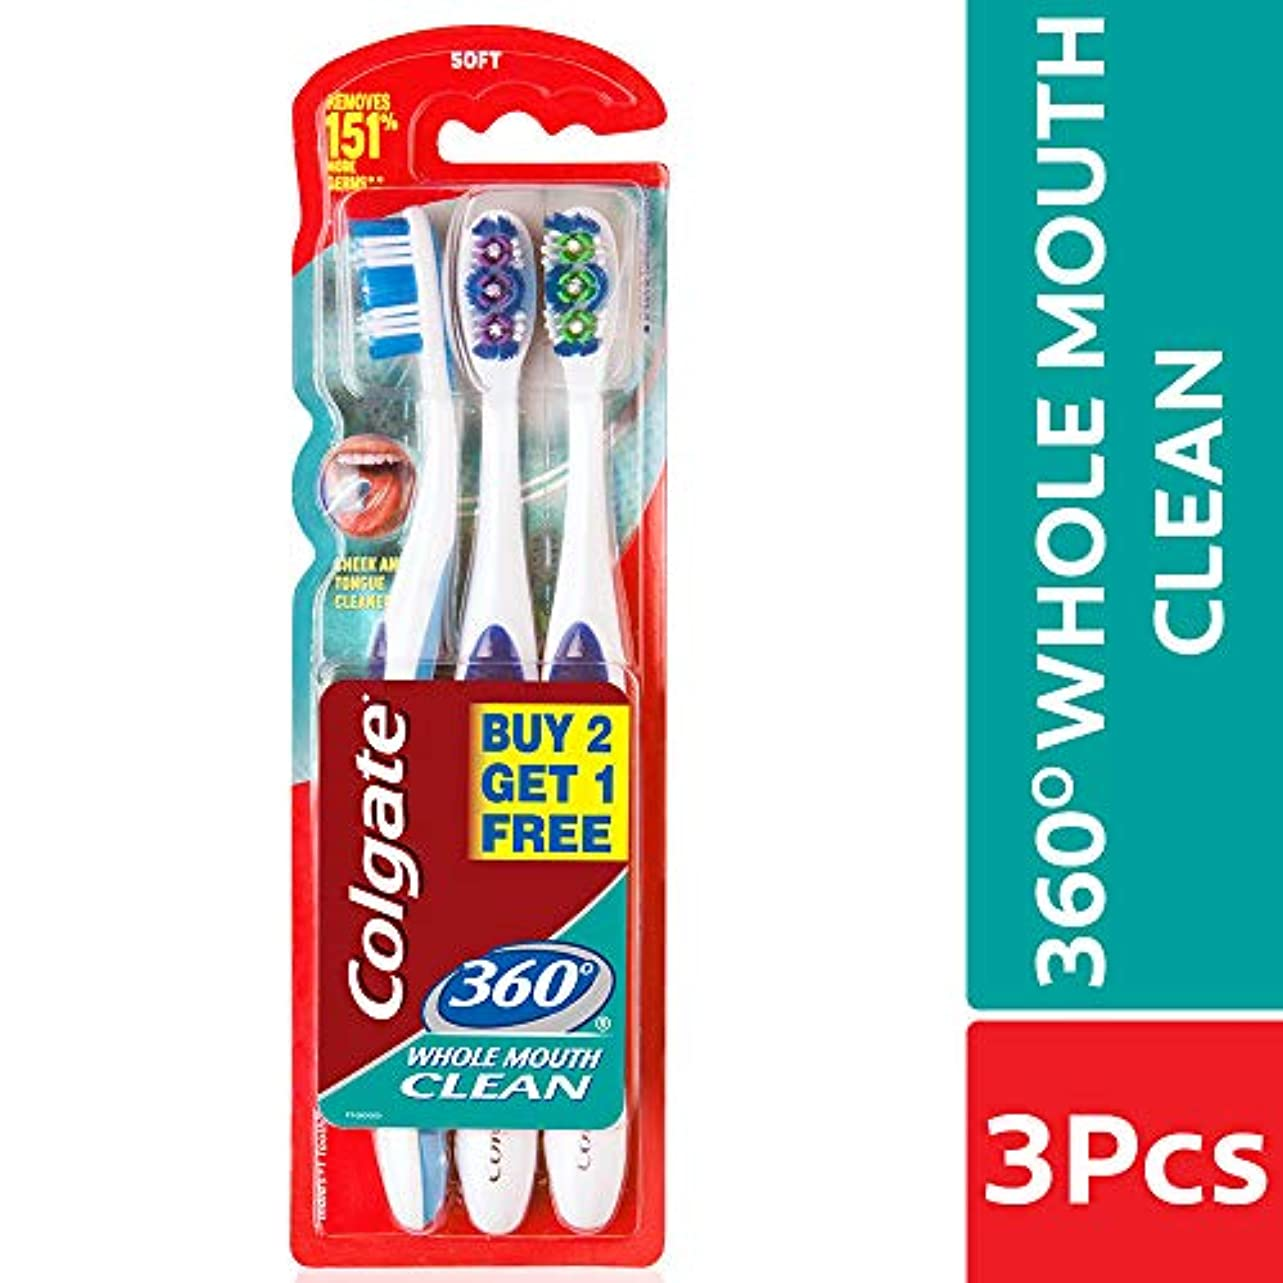 ヘルメット不公平ツーリストColgate 360 whole mouth clean (MEDIUM) toothbrush (3pc pack)